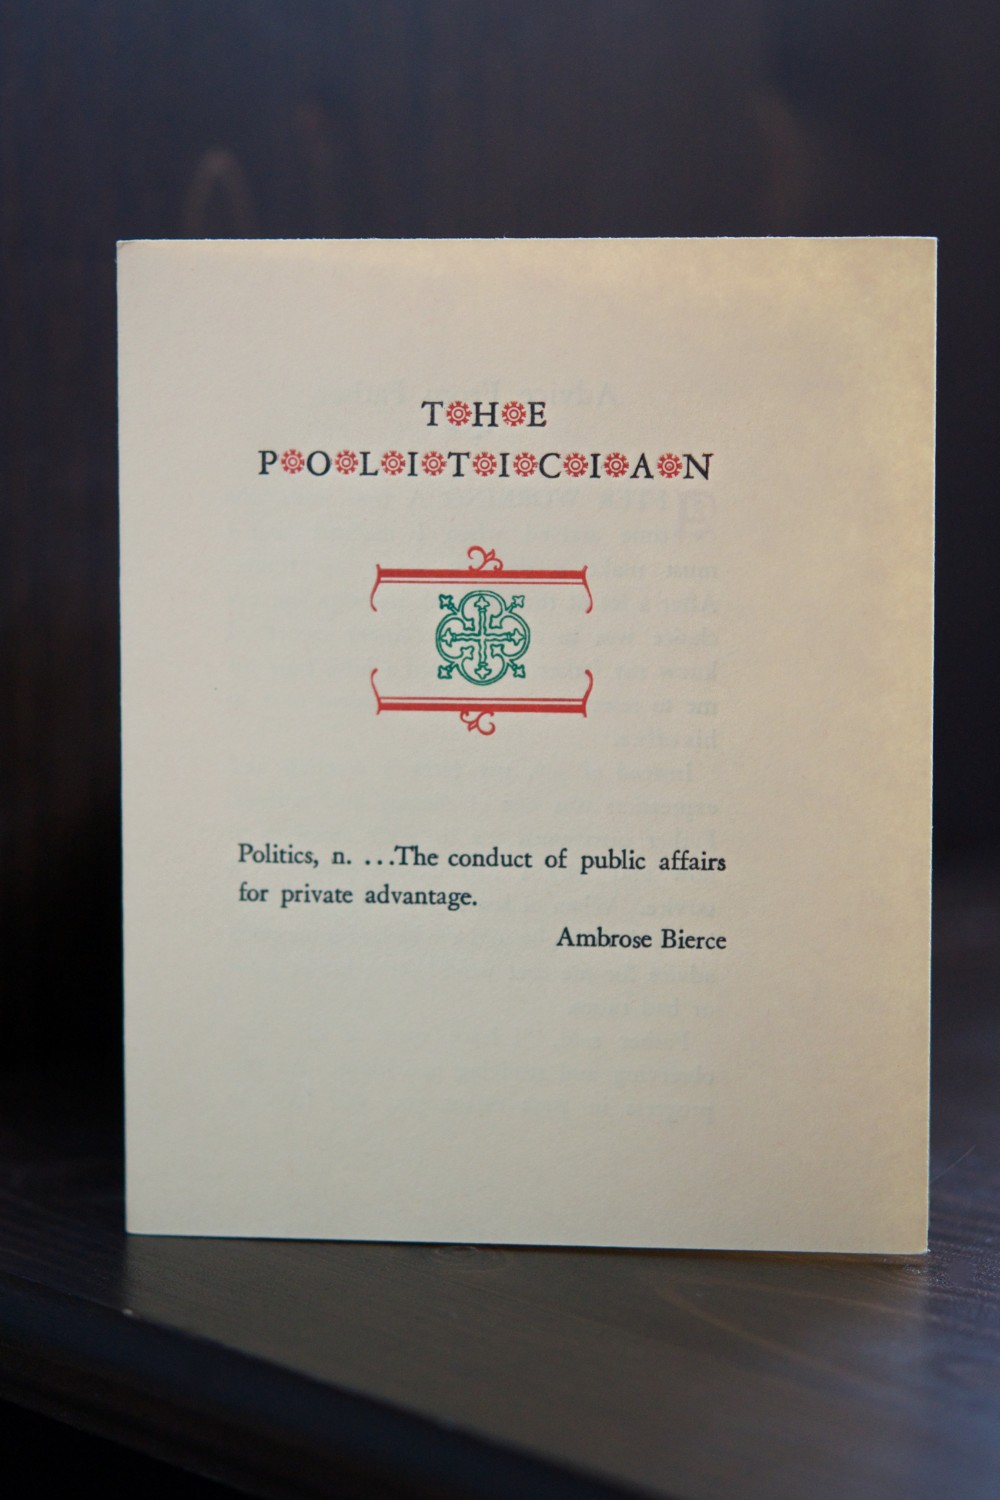 The Politician pamphlet